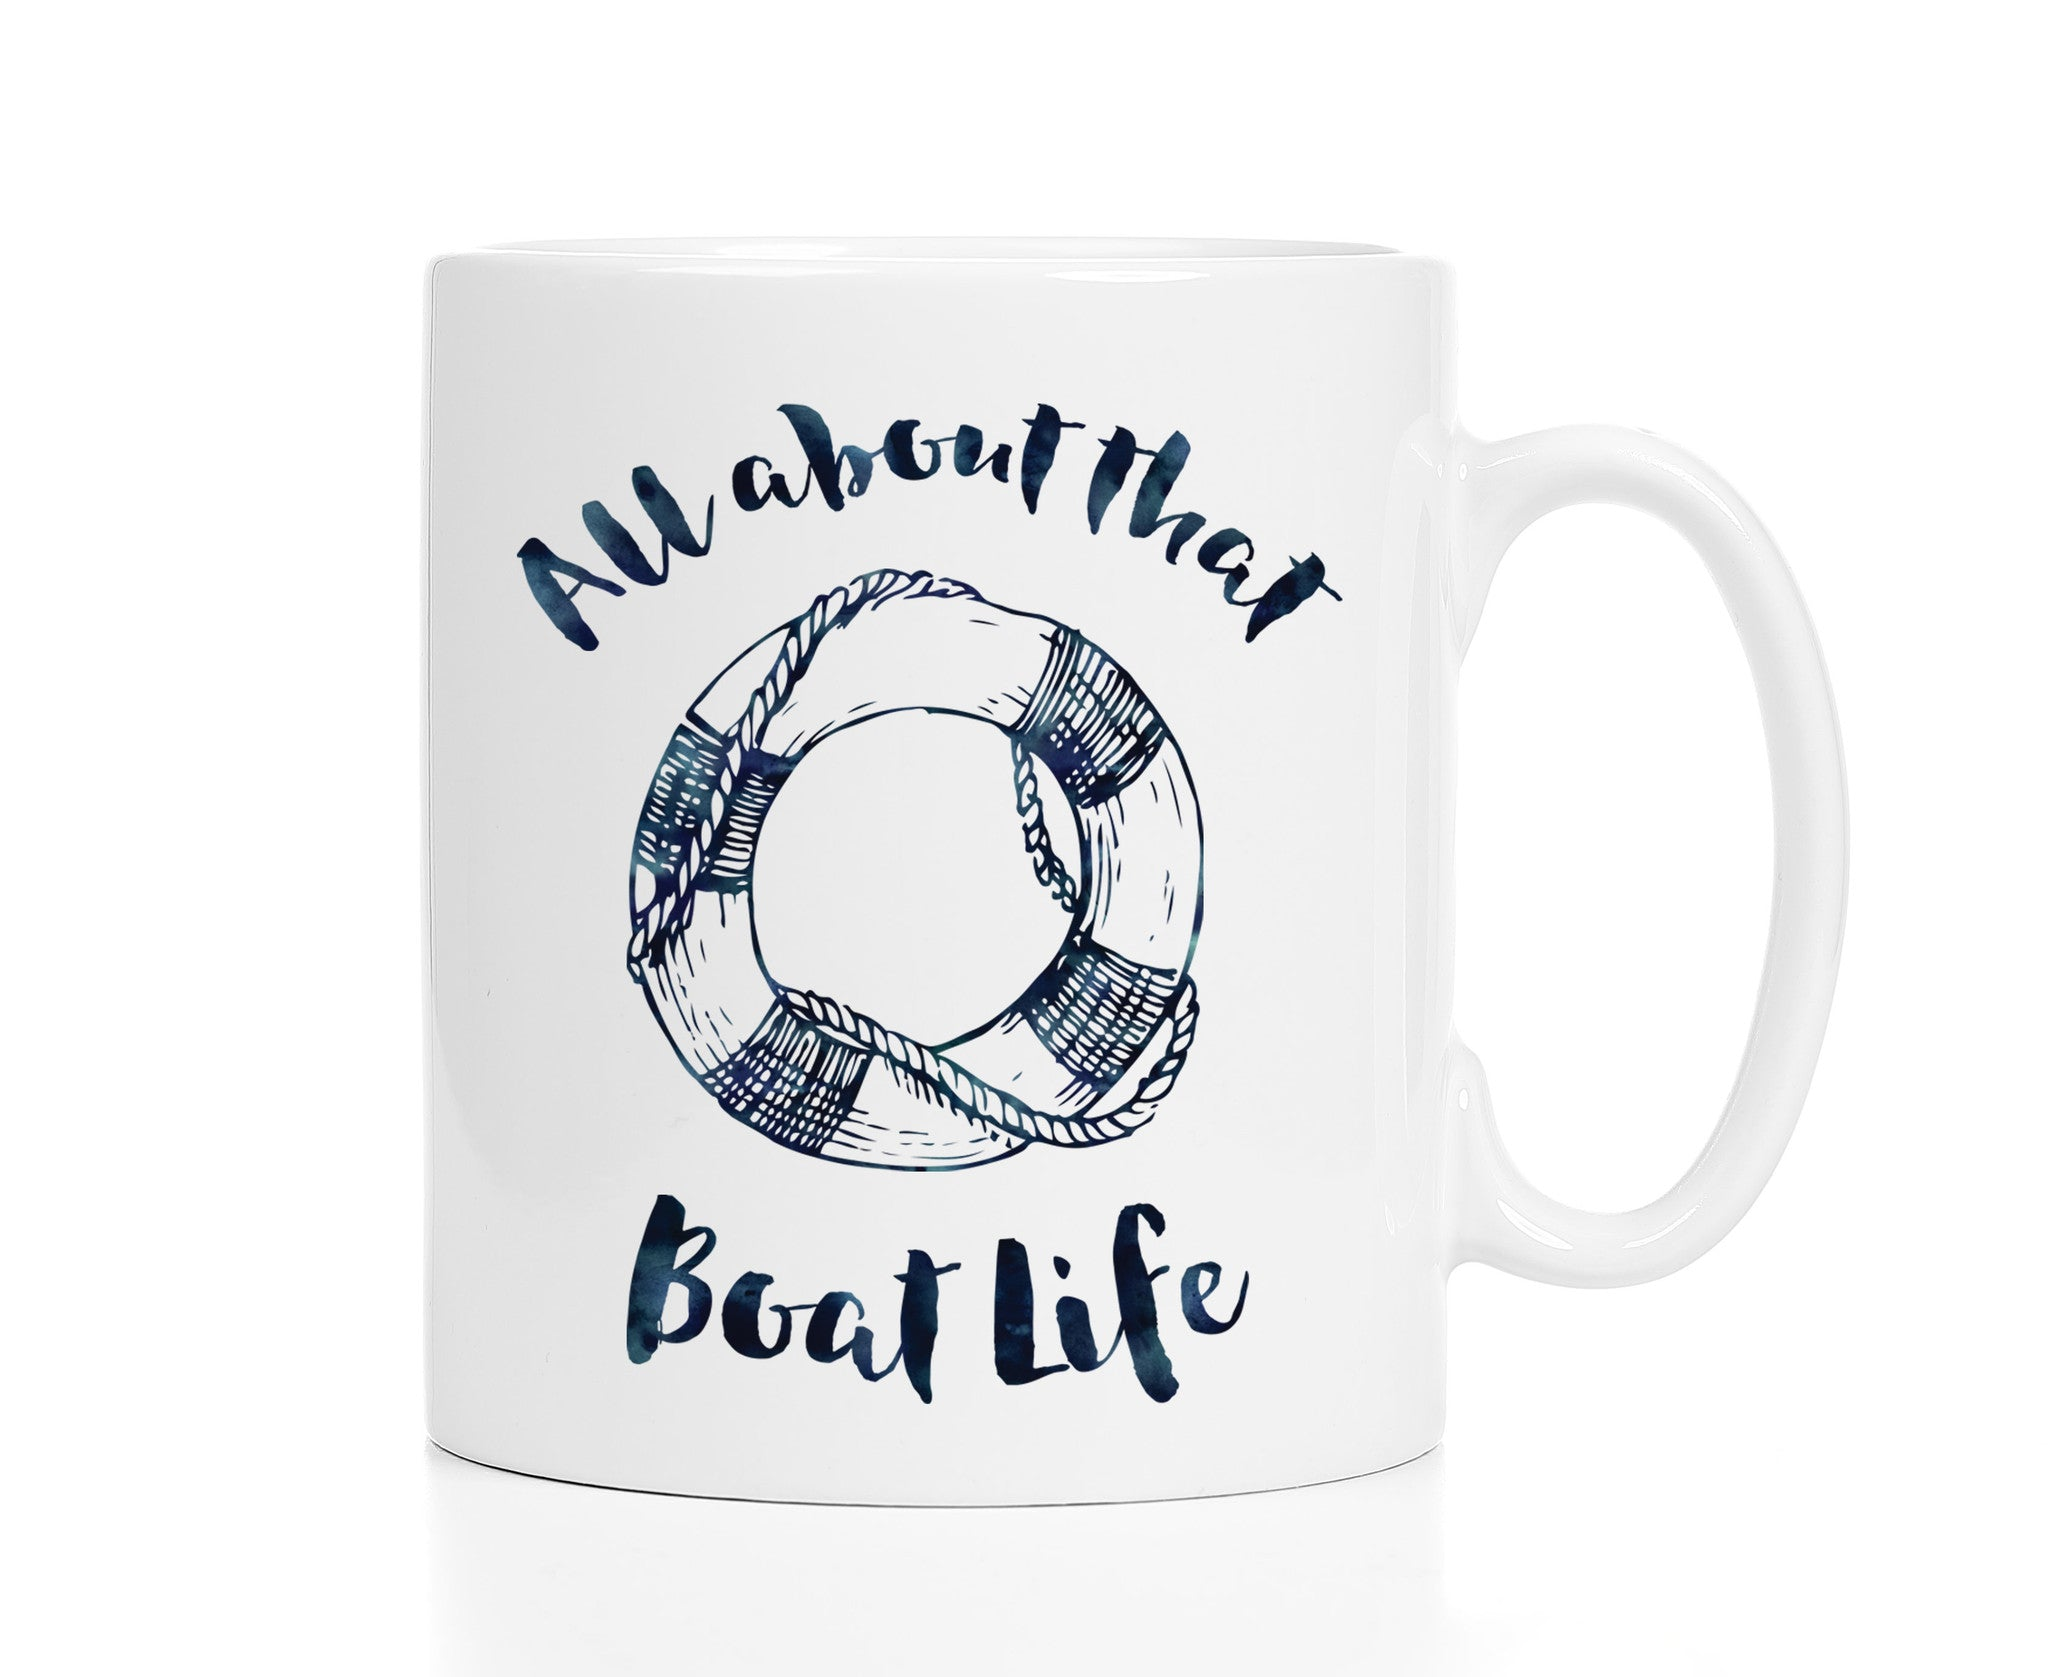 Boat Mug - All About That Boat Life